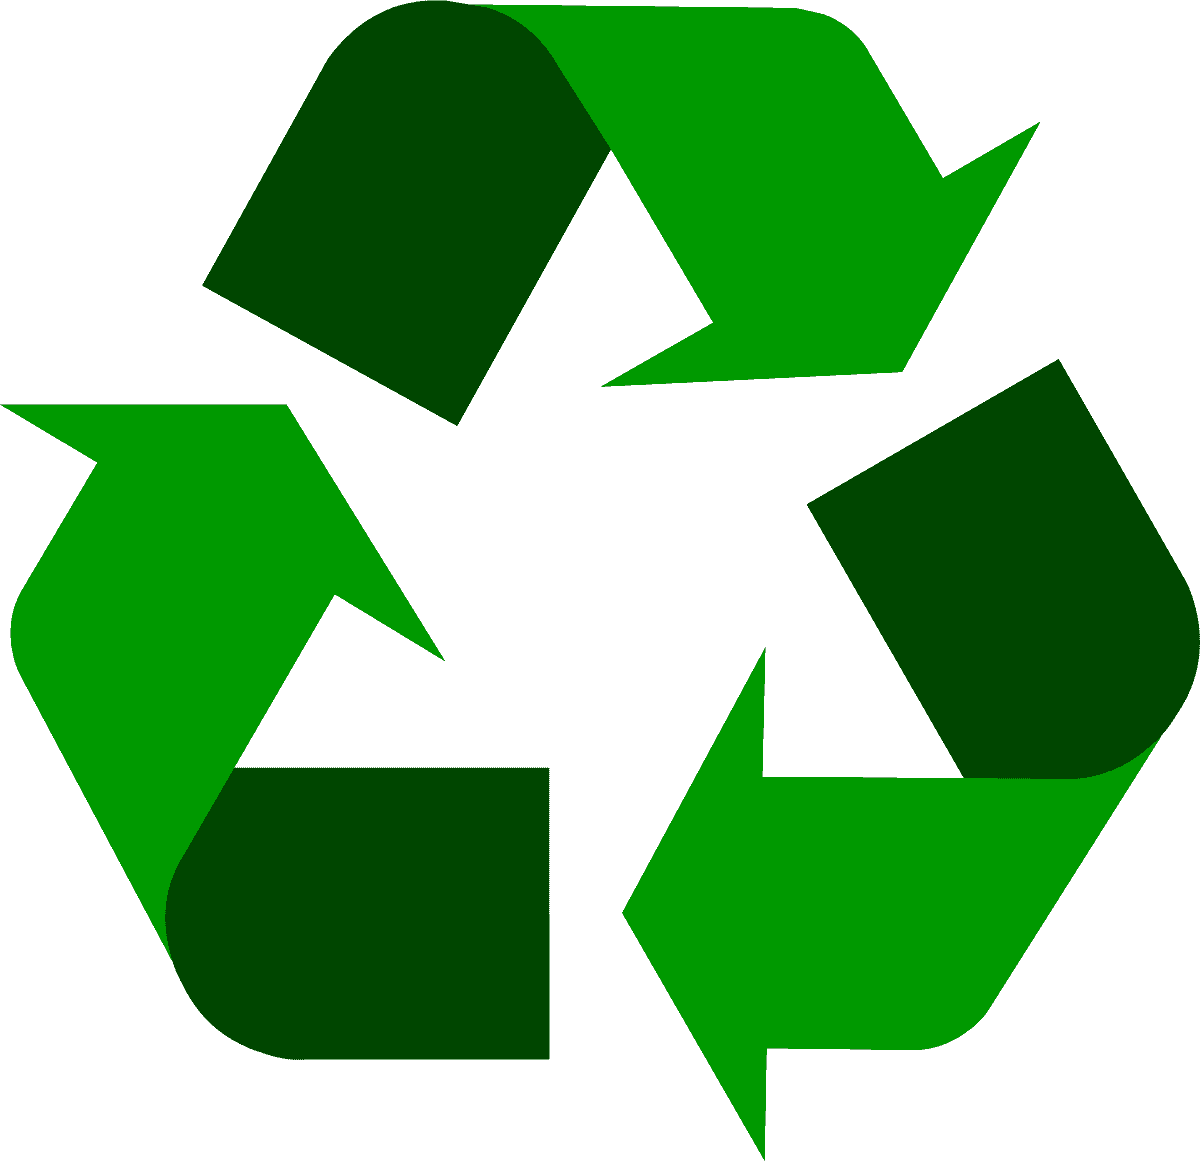 download recycling symbol the original recycle logo rh recycling com recycling clip art free recycle clip art free download